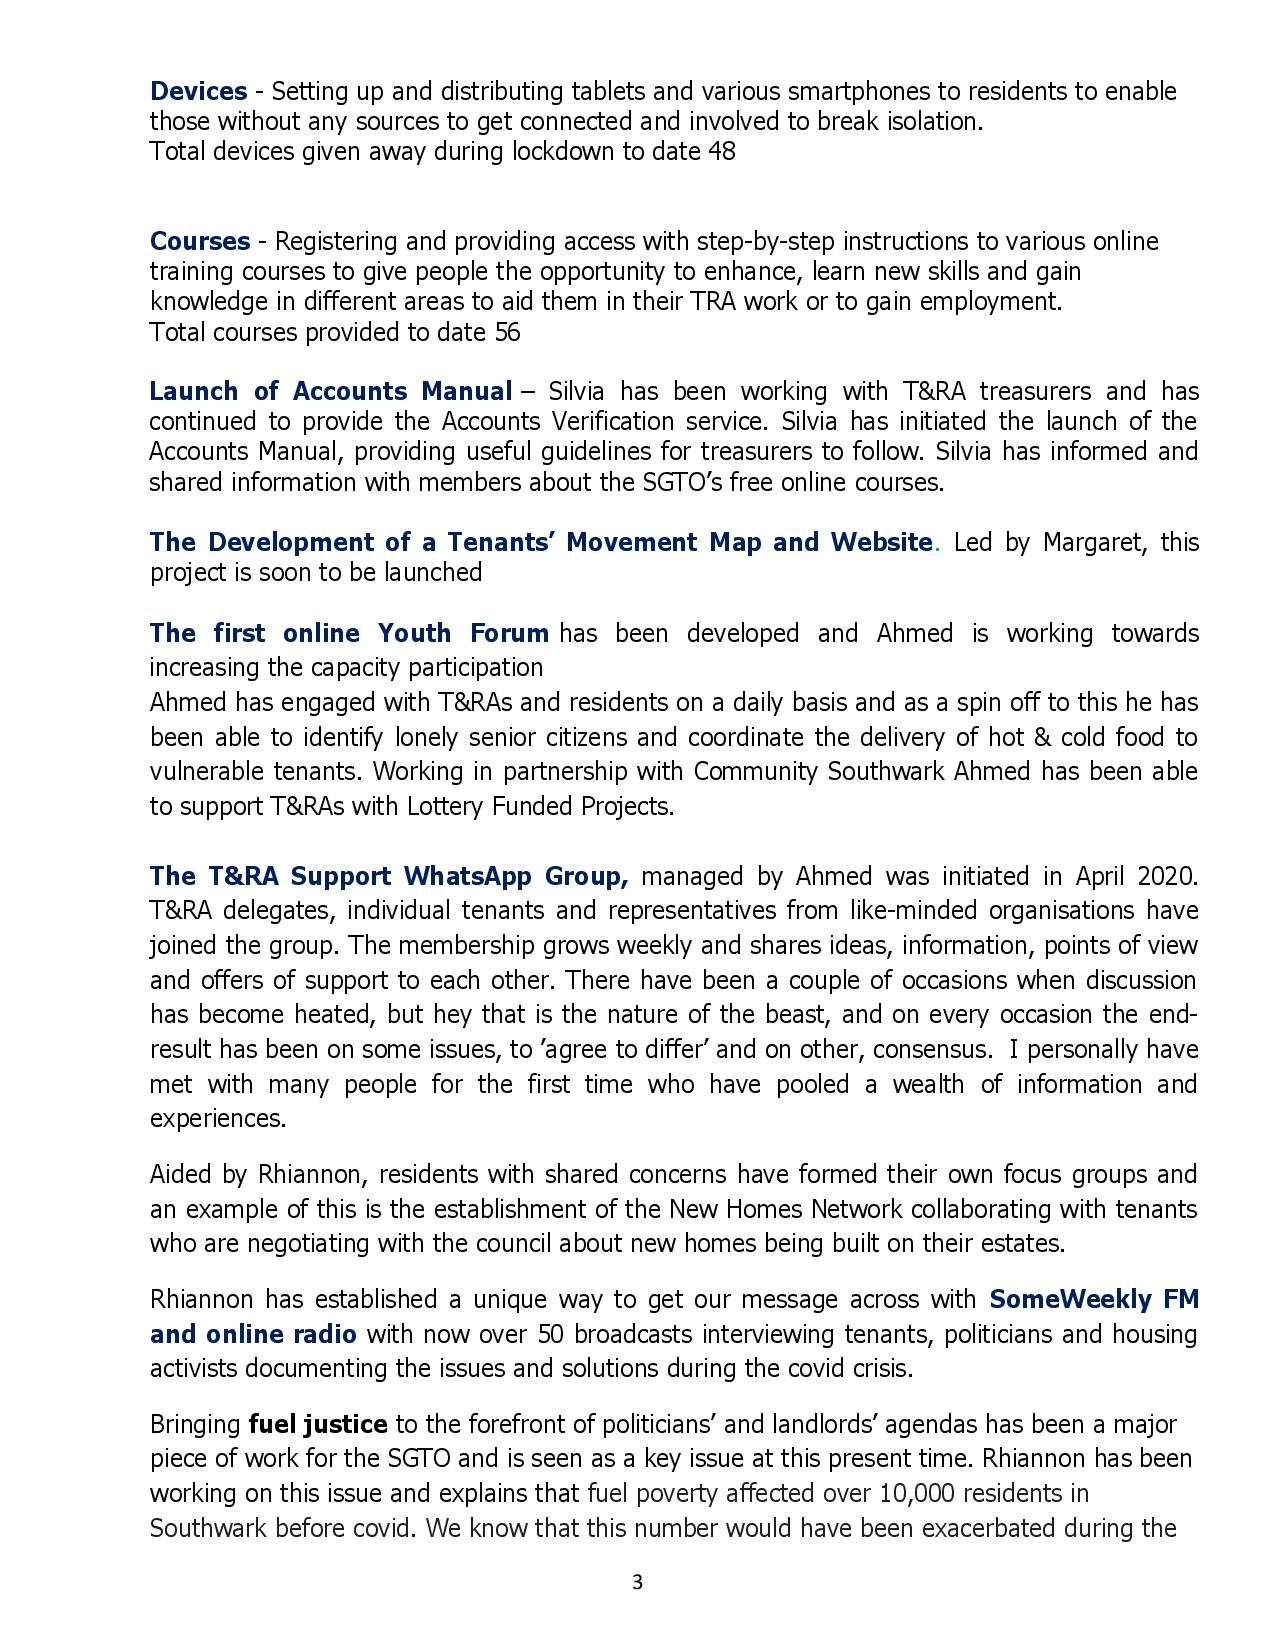 Letter to the SGTO DELEGATES 28TH APRIL 2021-page-003